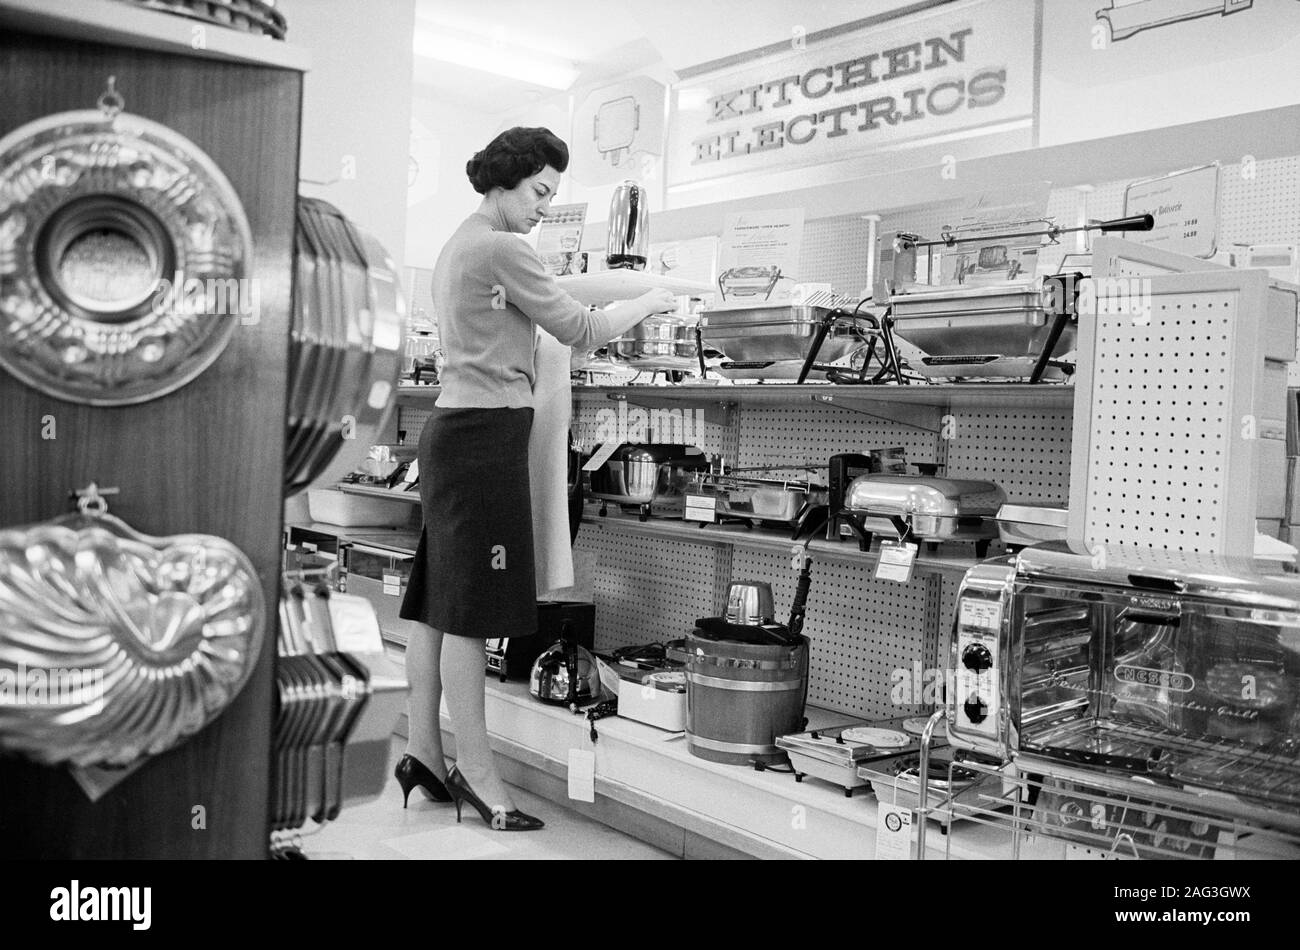 Woman Shopping For Kitchen Electrical Appliances Hect Co Washington D C Usa Photograph By Marion S Trikosko March 1965 Stock Photo Alamy